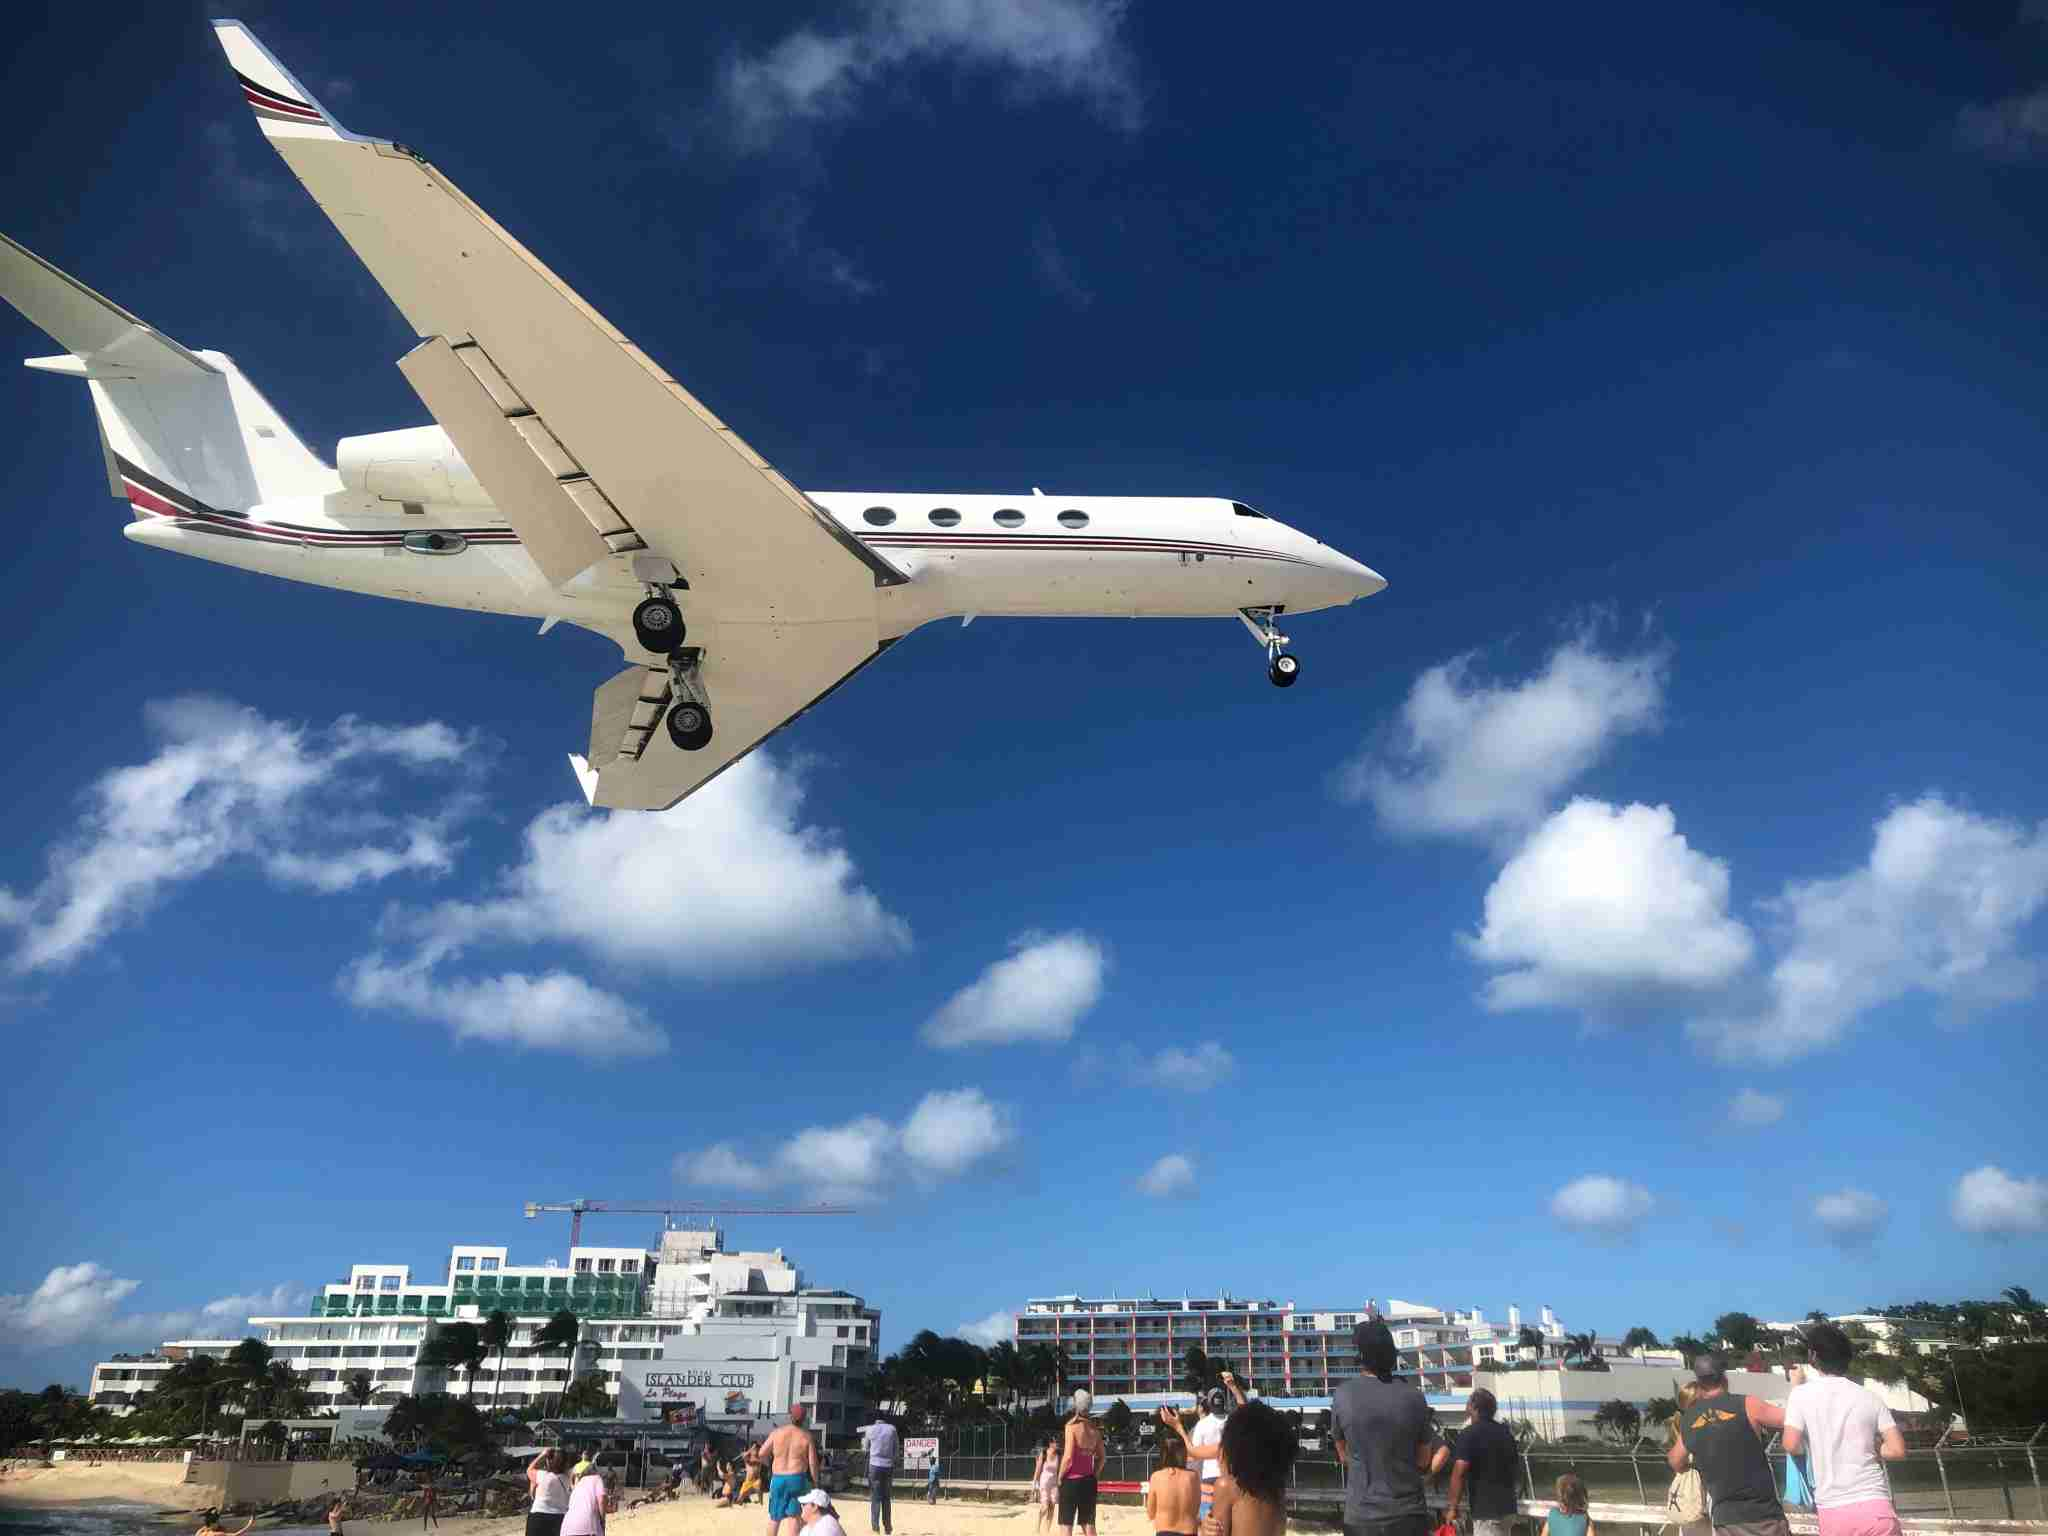 Plane flying over beach by Erin Carey